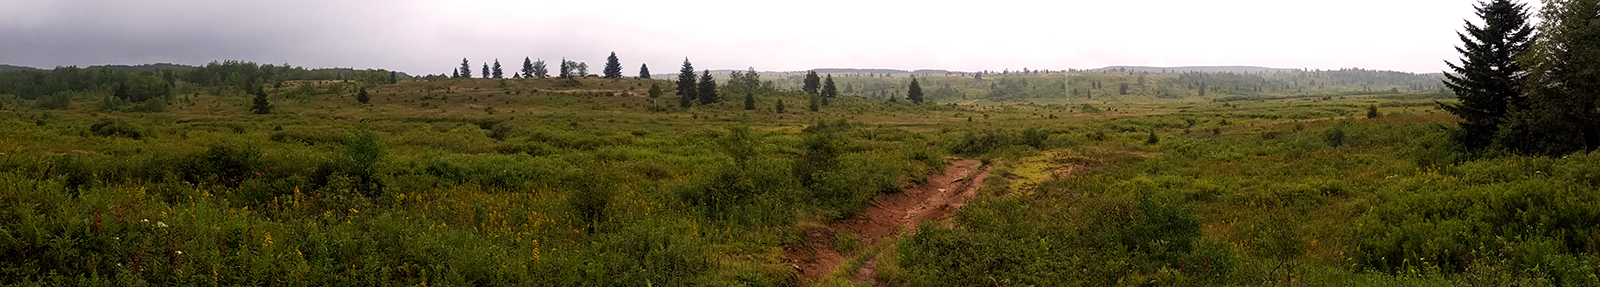 The high meadows of Dolly Sods